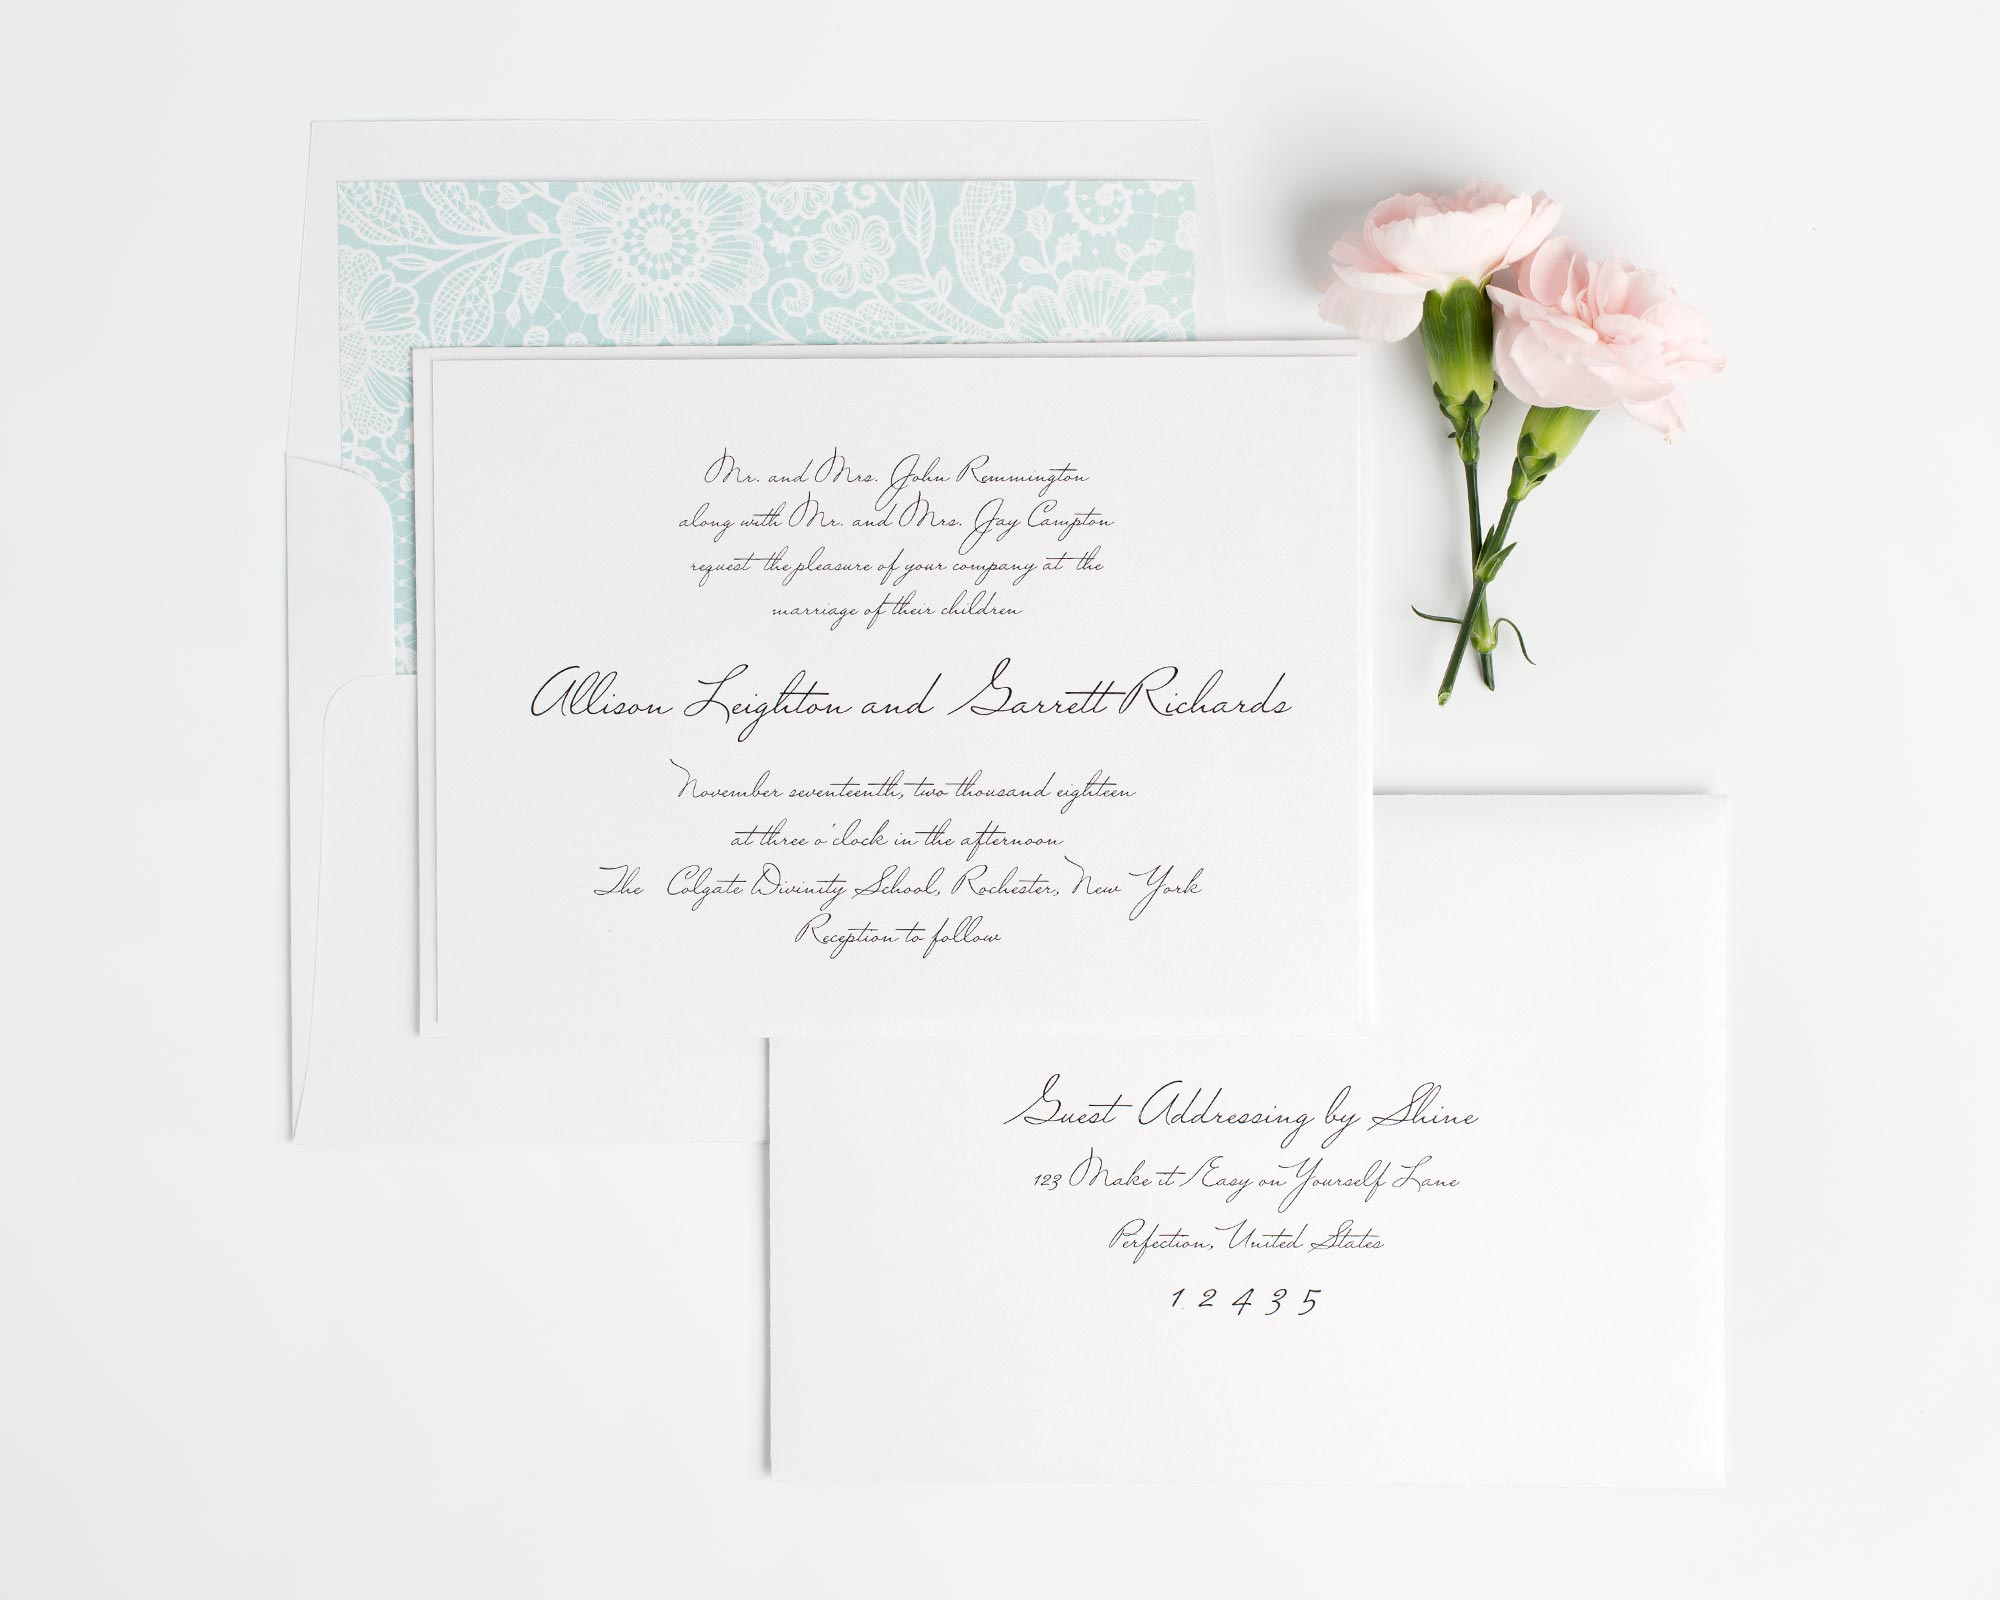 Mint Lace Wedding Invitations with Handwritten Type